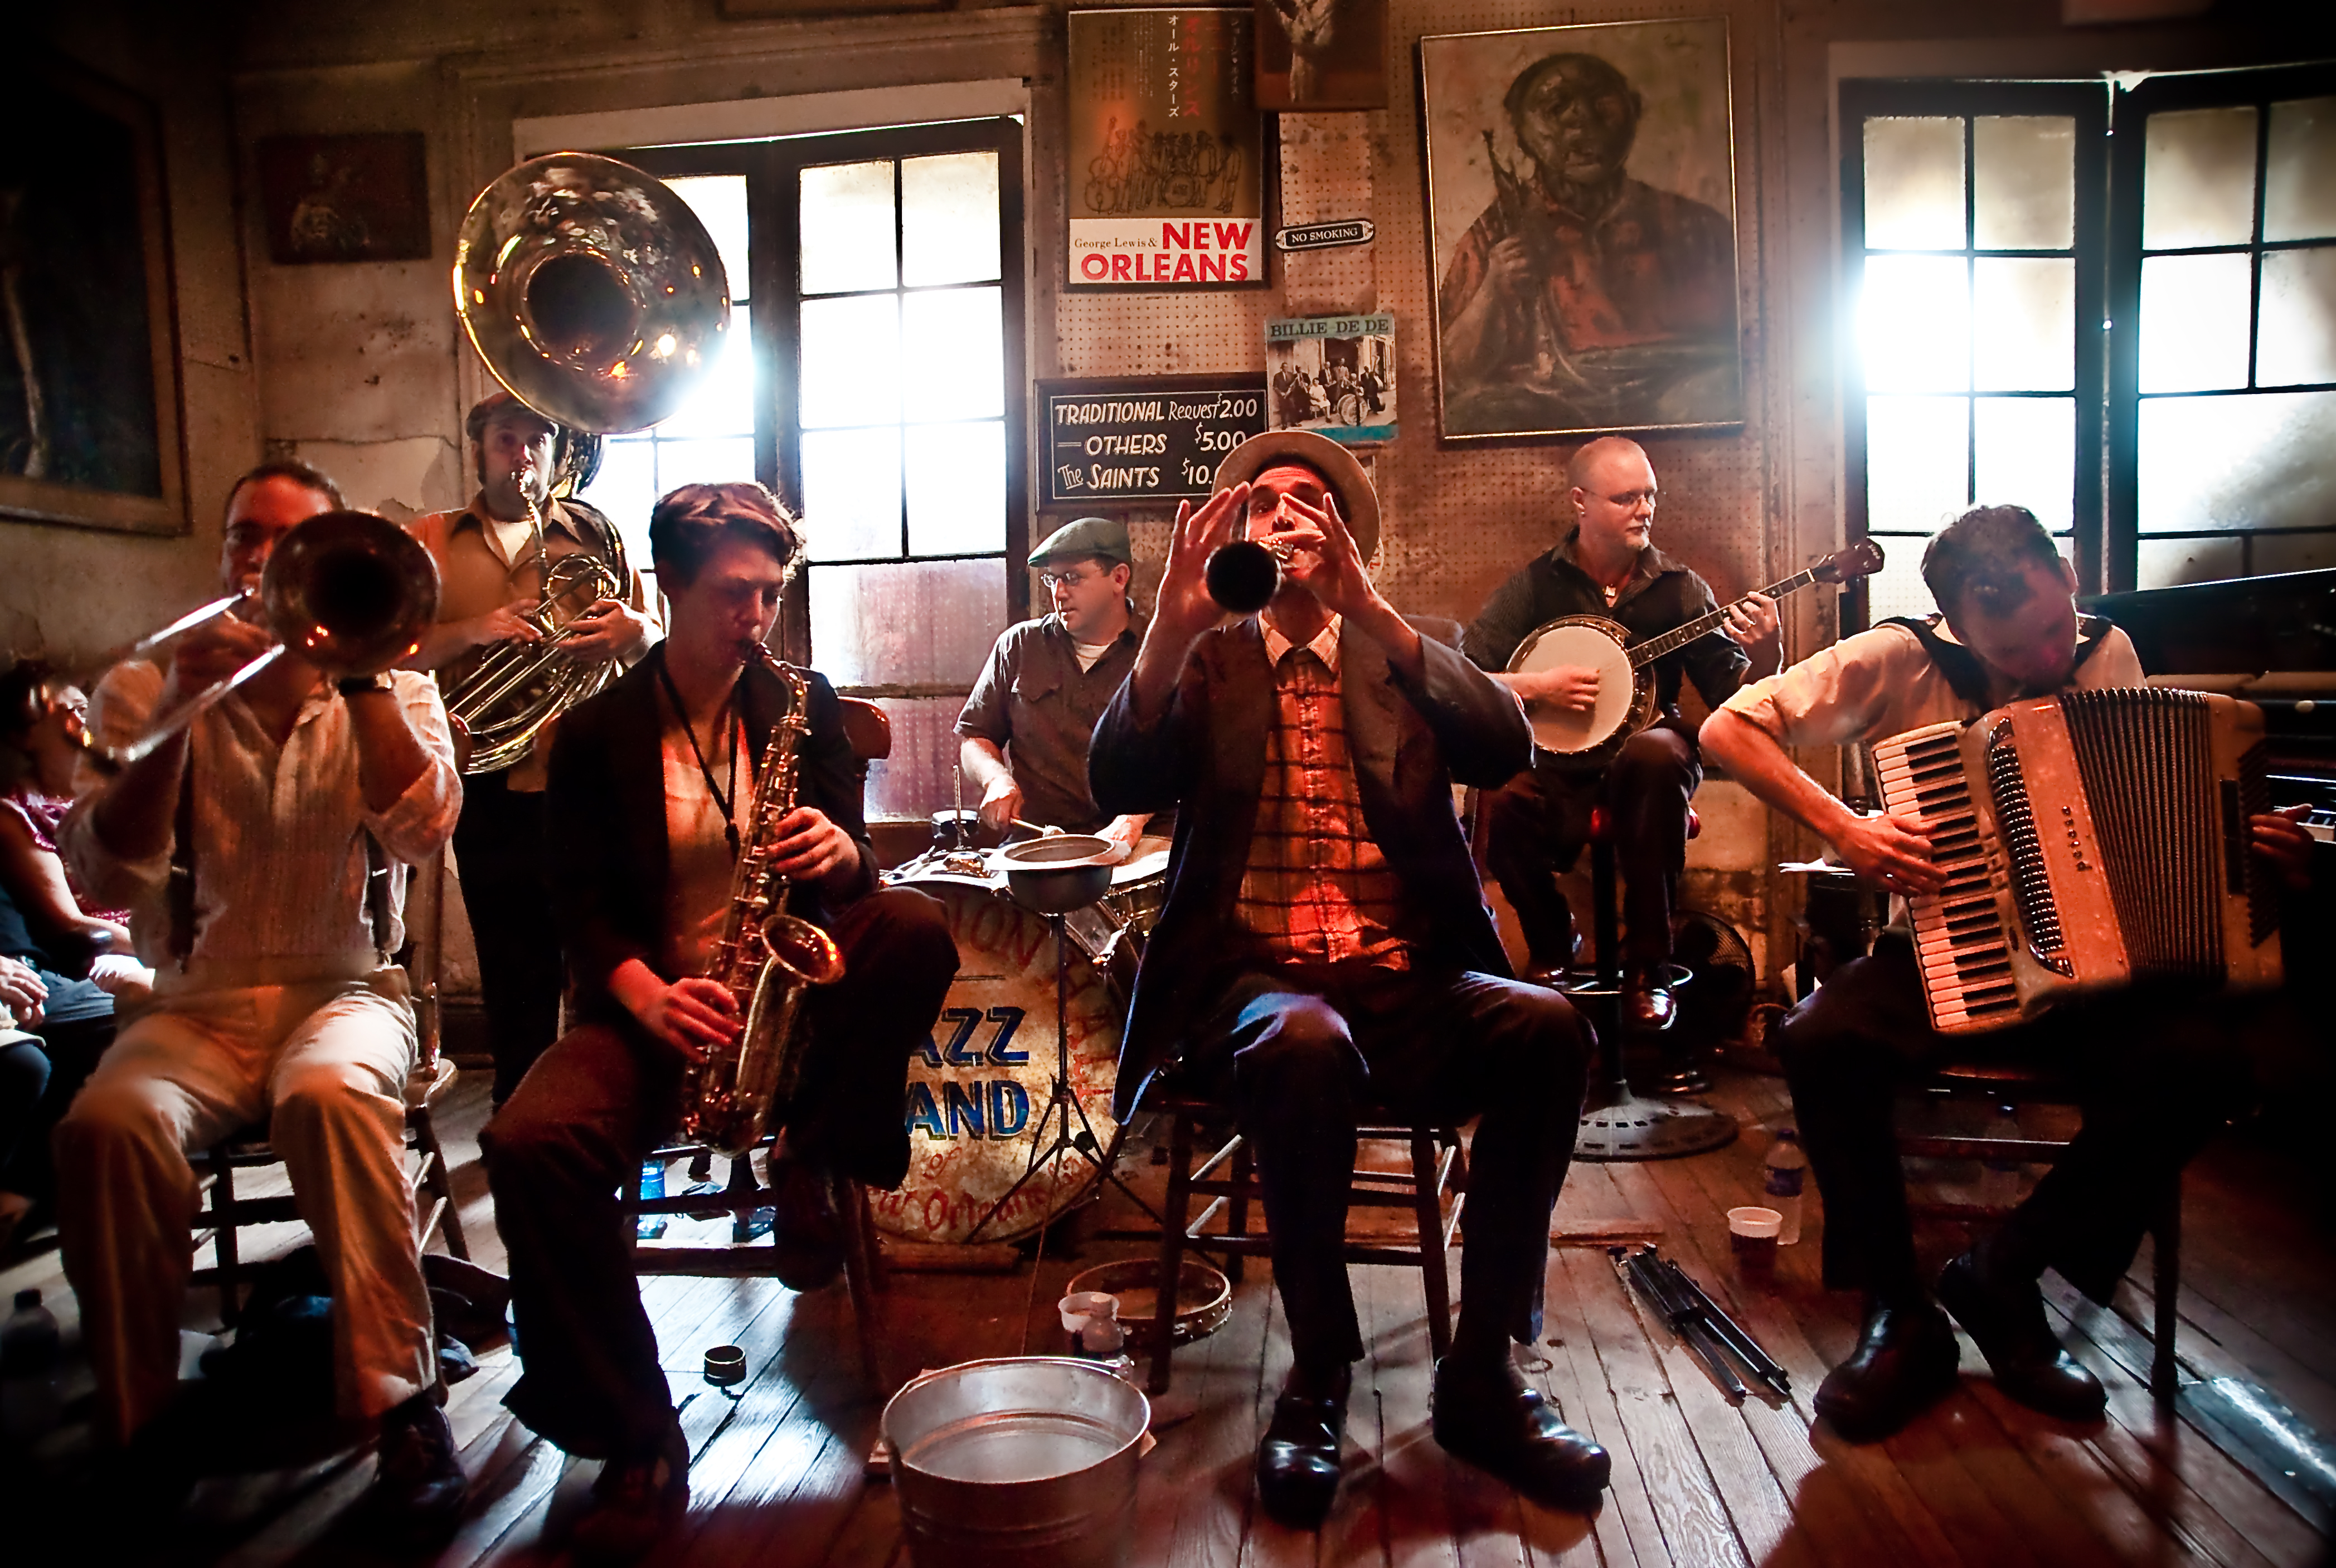 report on new orleans jazz band The first rule of new orleans is that you always talk about new orleans   rebirth brass band is one of the city's most famous exports, but they still call   she has spent much of the last couple of years reporting from almost.